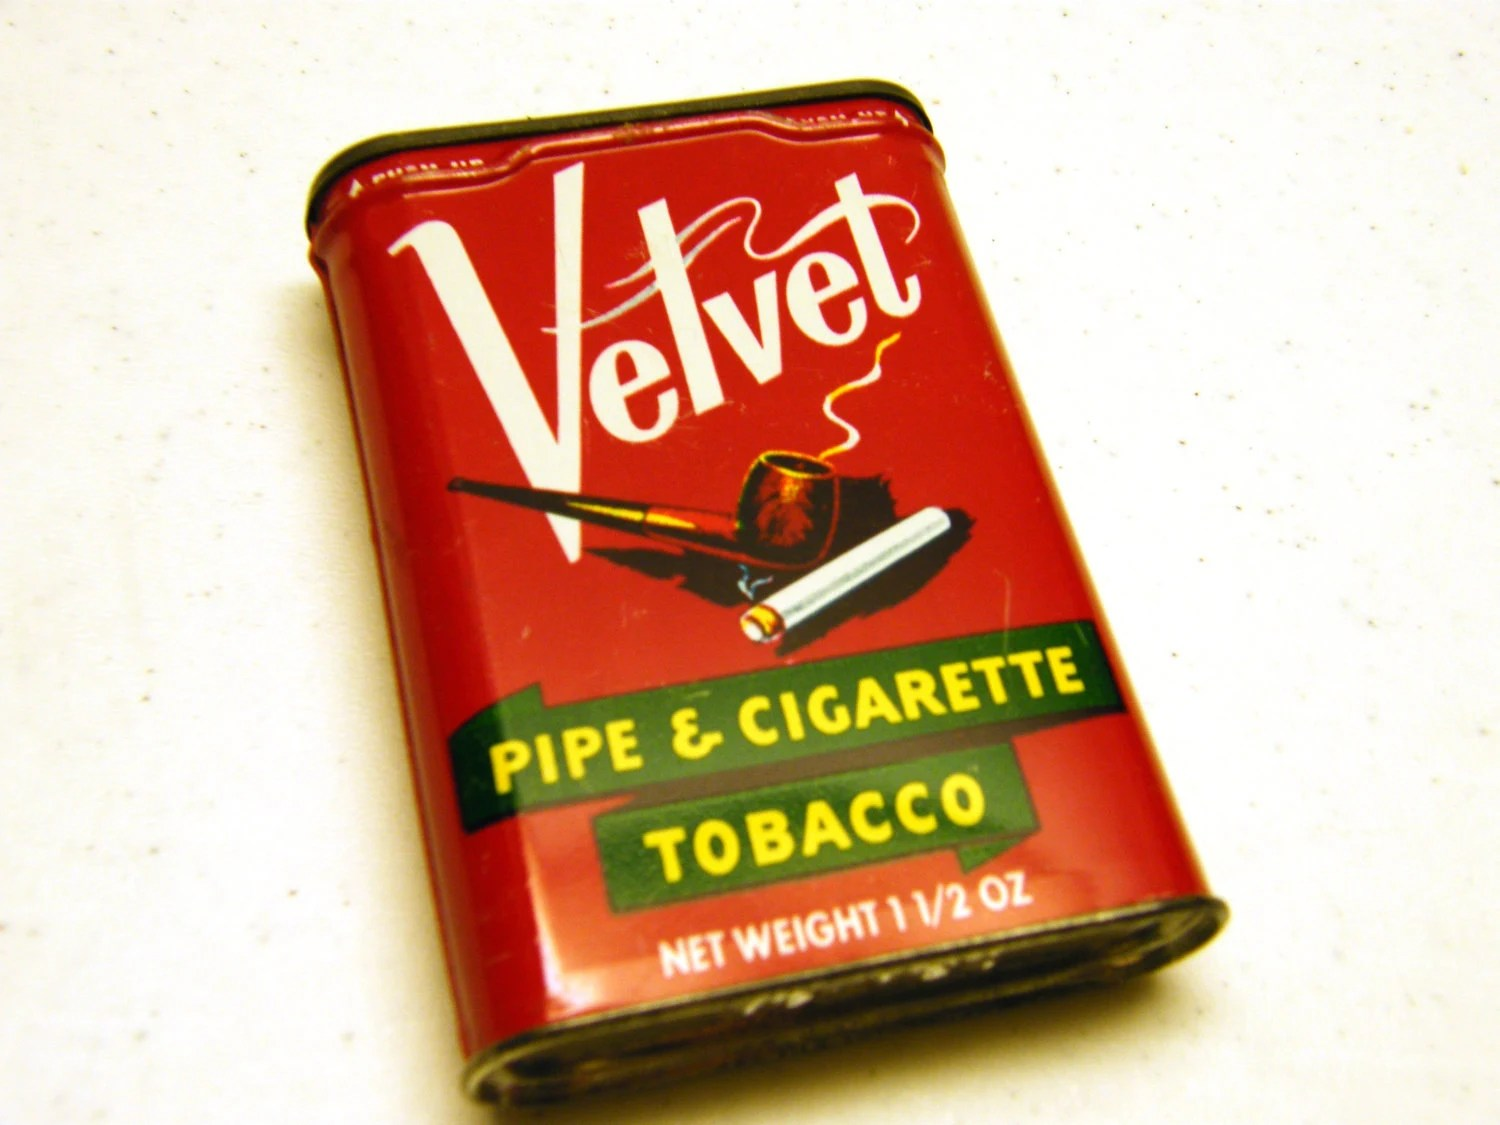 Velvet Pipe and Cigarette Tobacco RED metal tin can